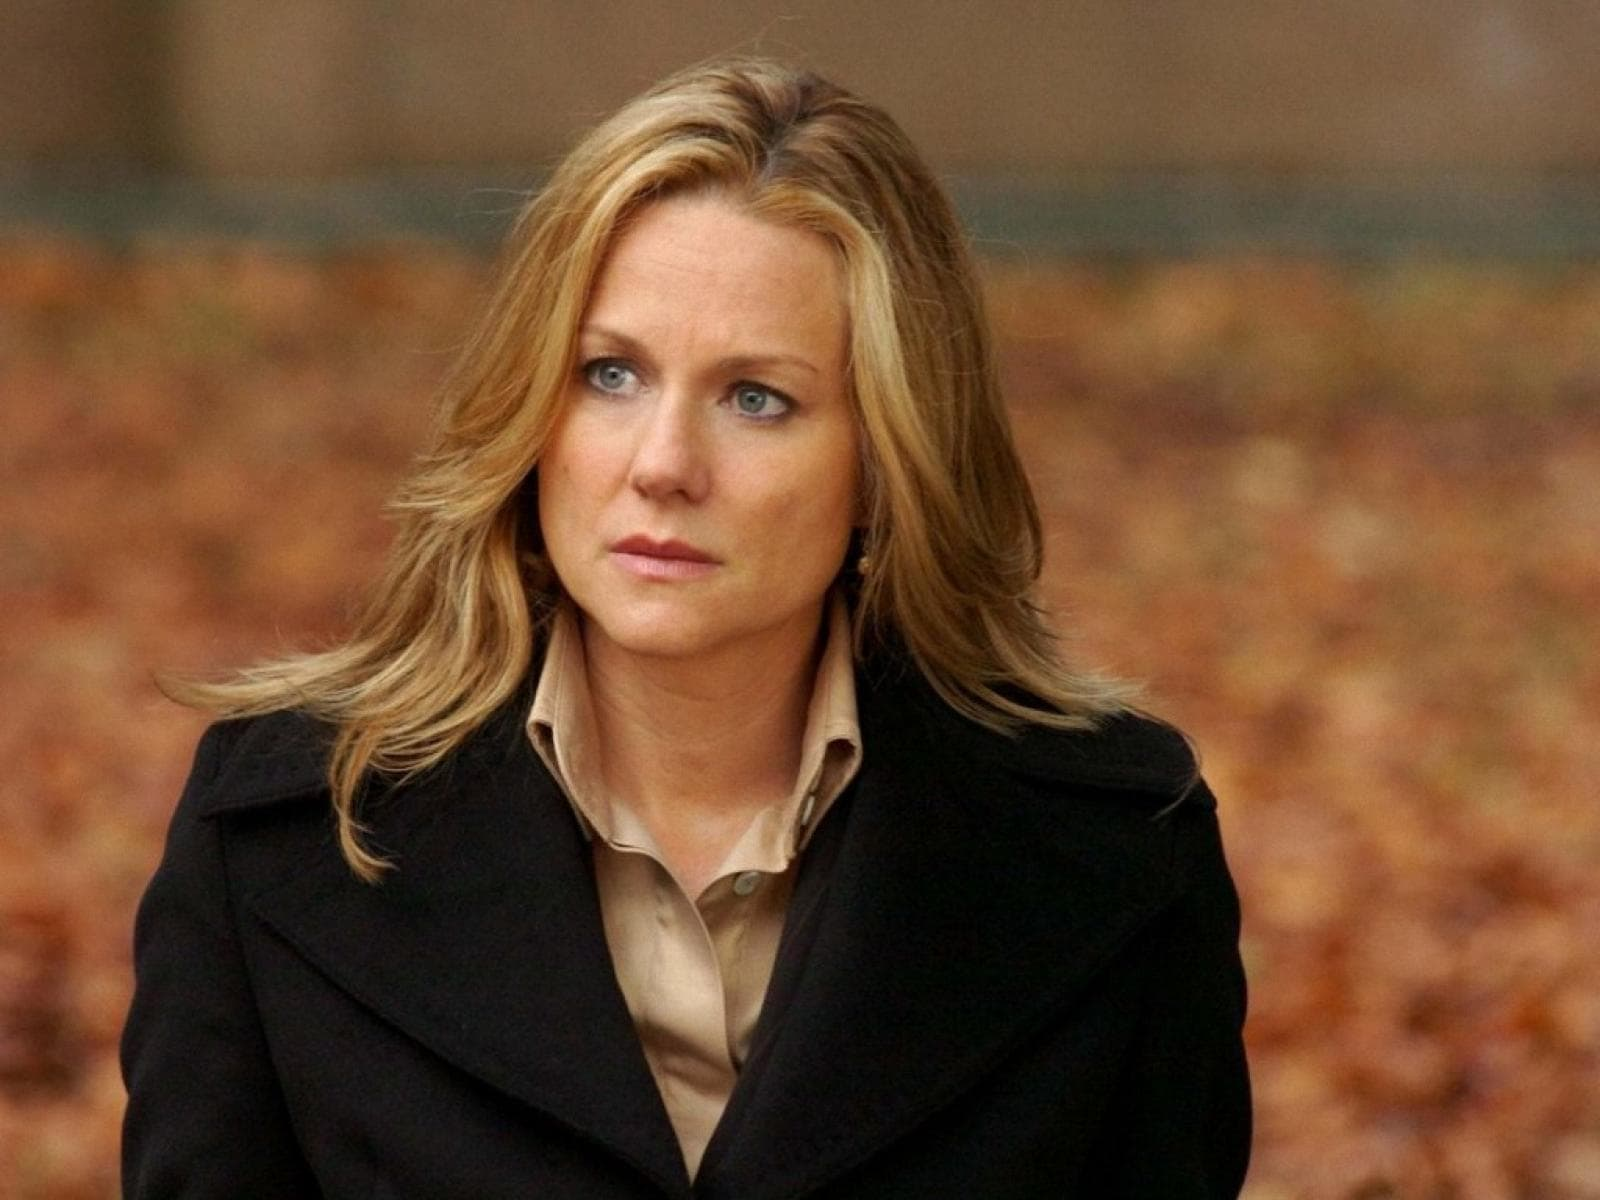 Laura Linney HQ wallpapers